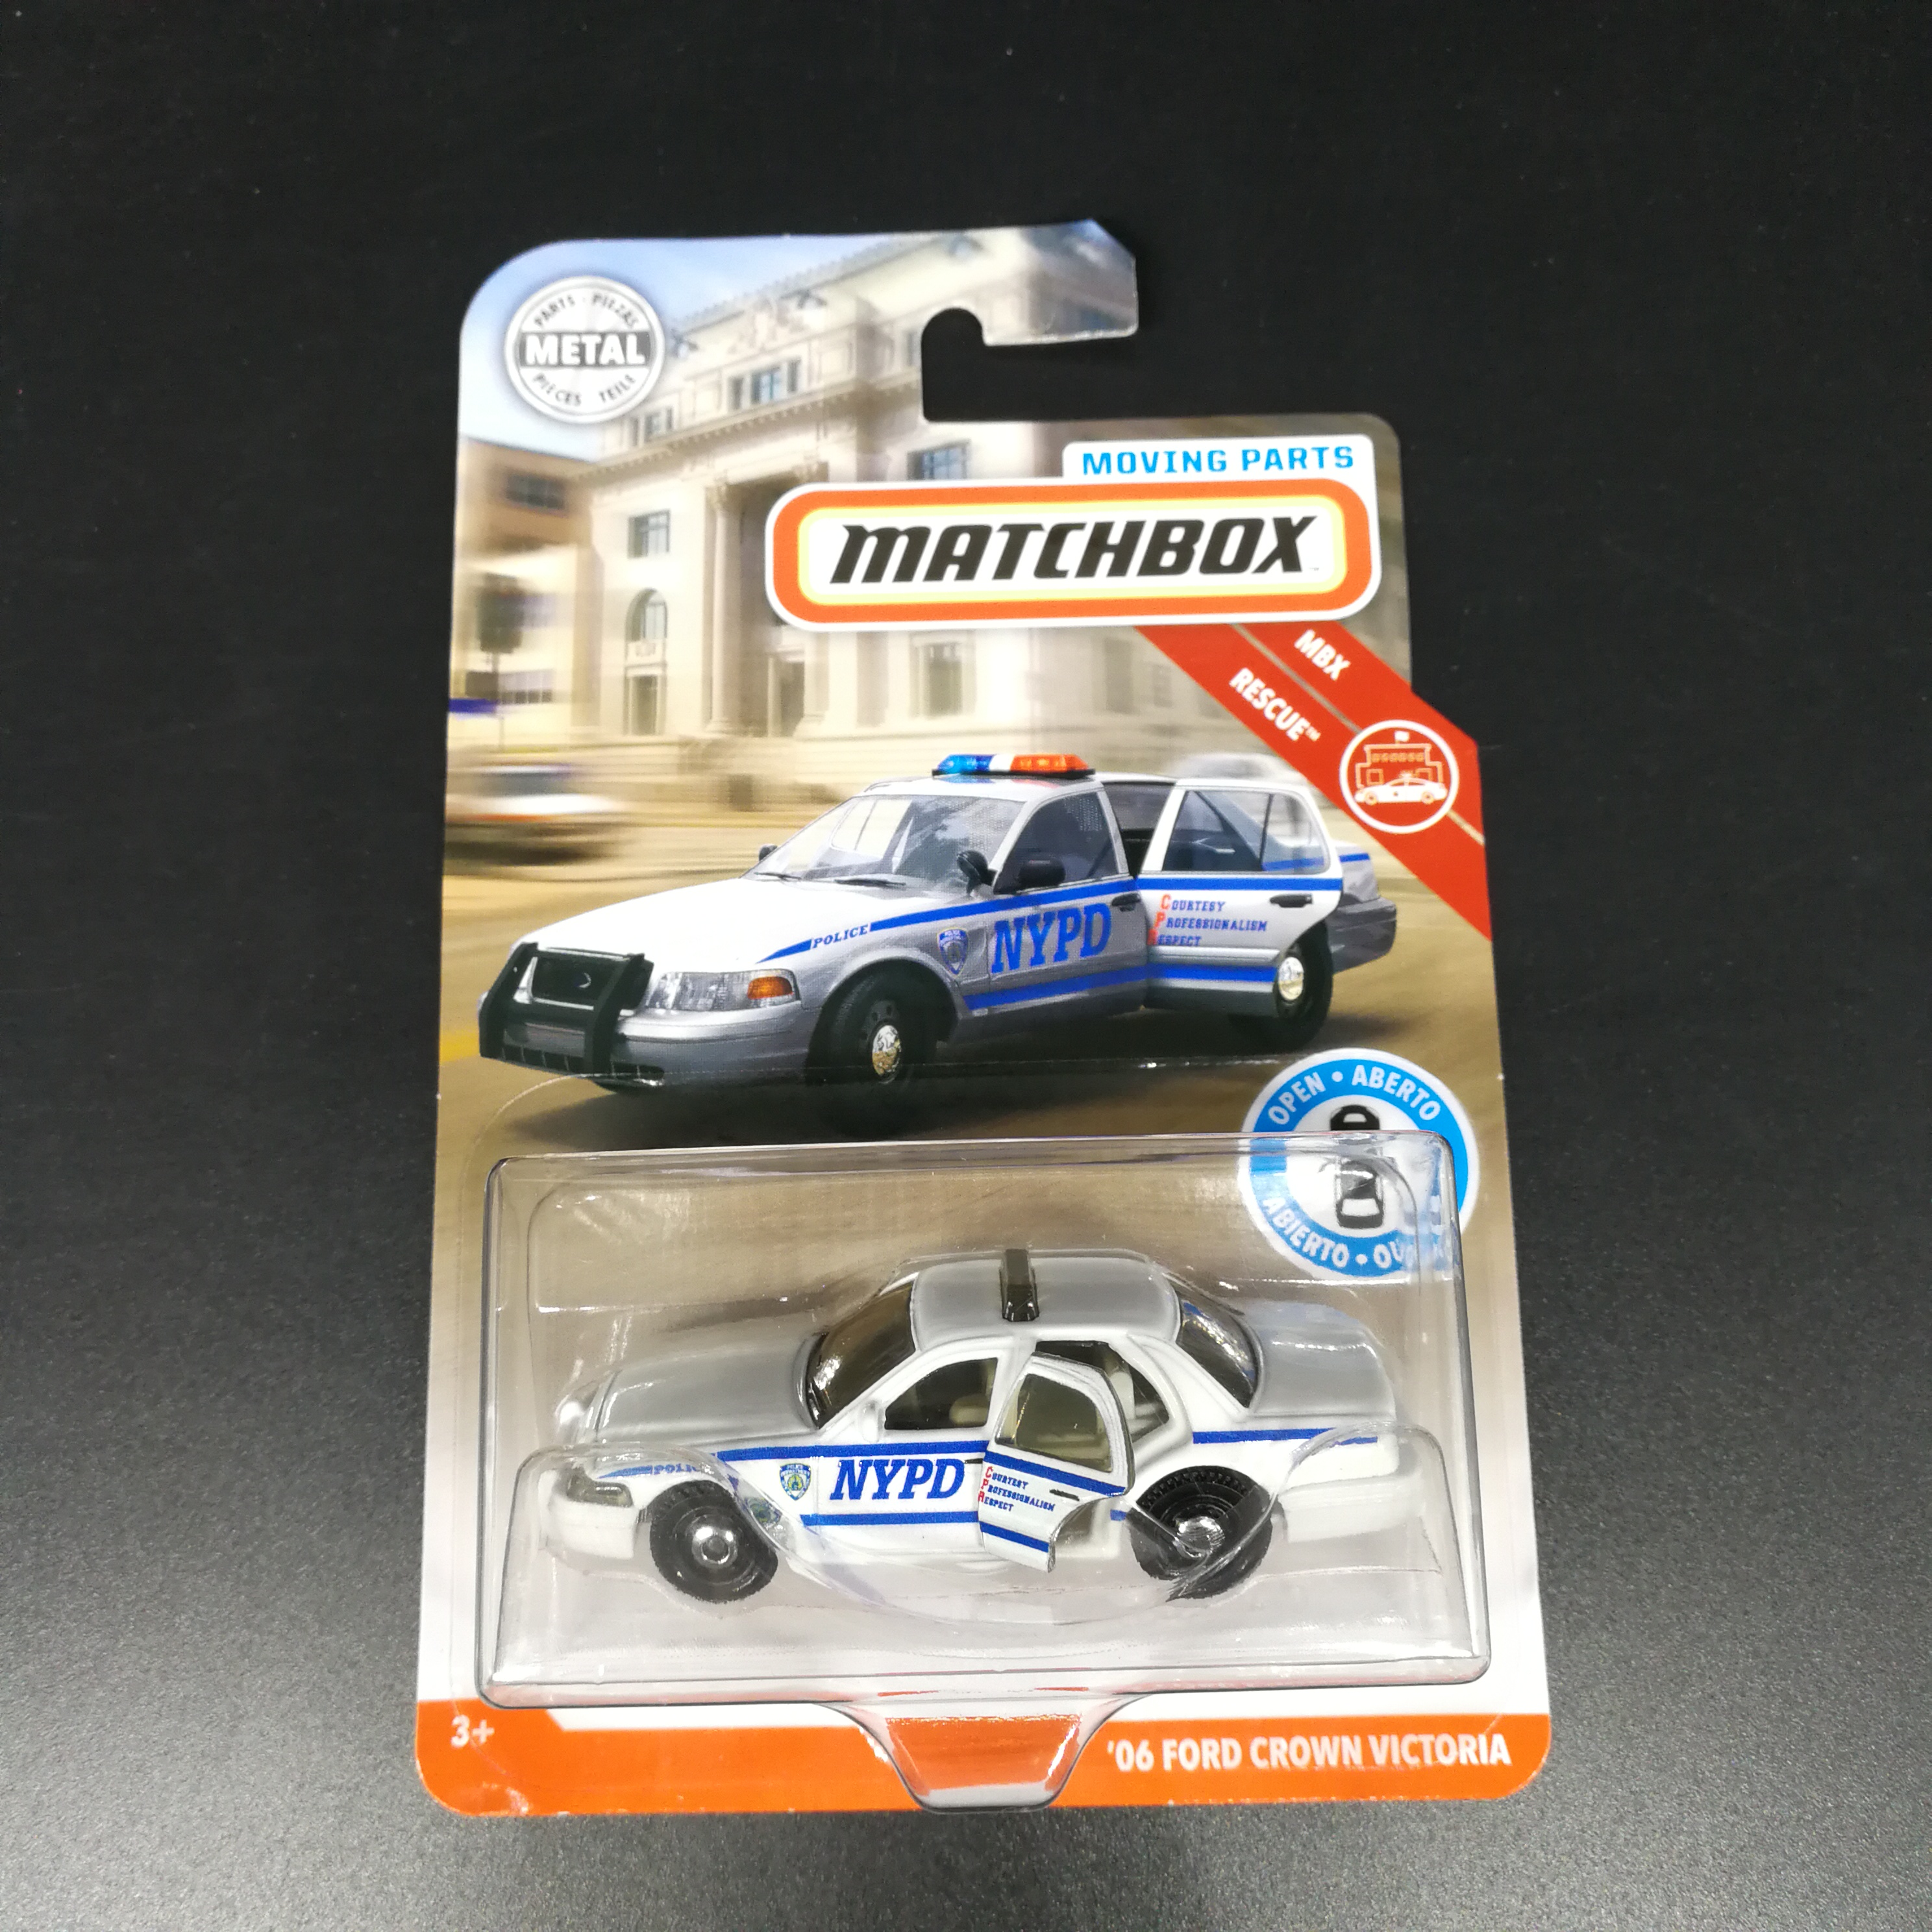 2019  Matchbox Car 1:64 Sports 65 FORD CROWN VICTORIA Metal Material Body Race Car Collection Alloy Car Gift2019  Matchbox Car 1:64 Sports 65 FORD CROWN VICTORIA Metal Material Body Race Car Collection Alloy Car Gift